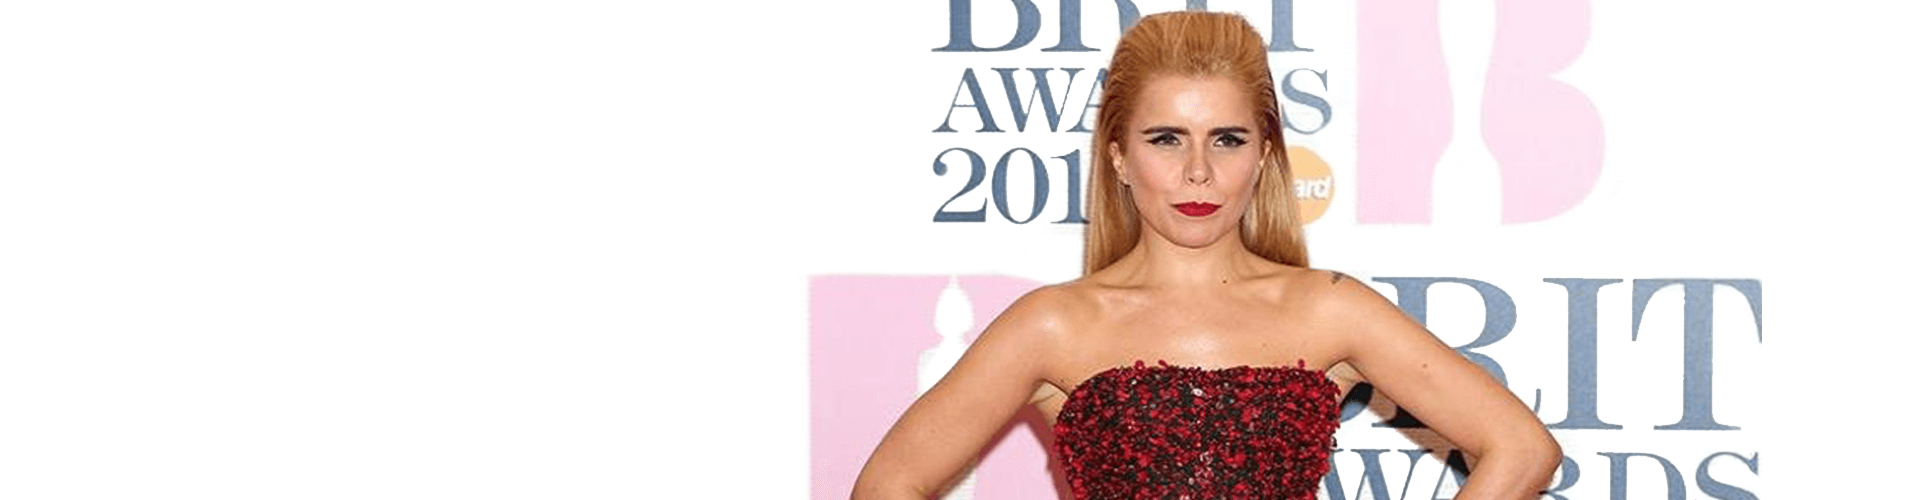 Paloma Faith wins the Best Female Solo Artist at the Brit Awards 2015.